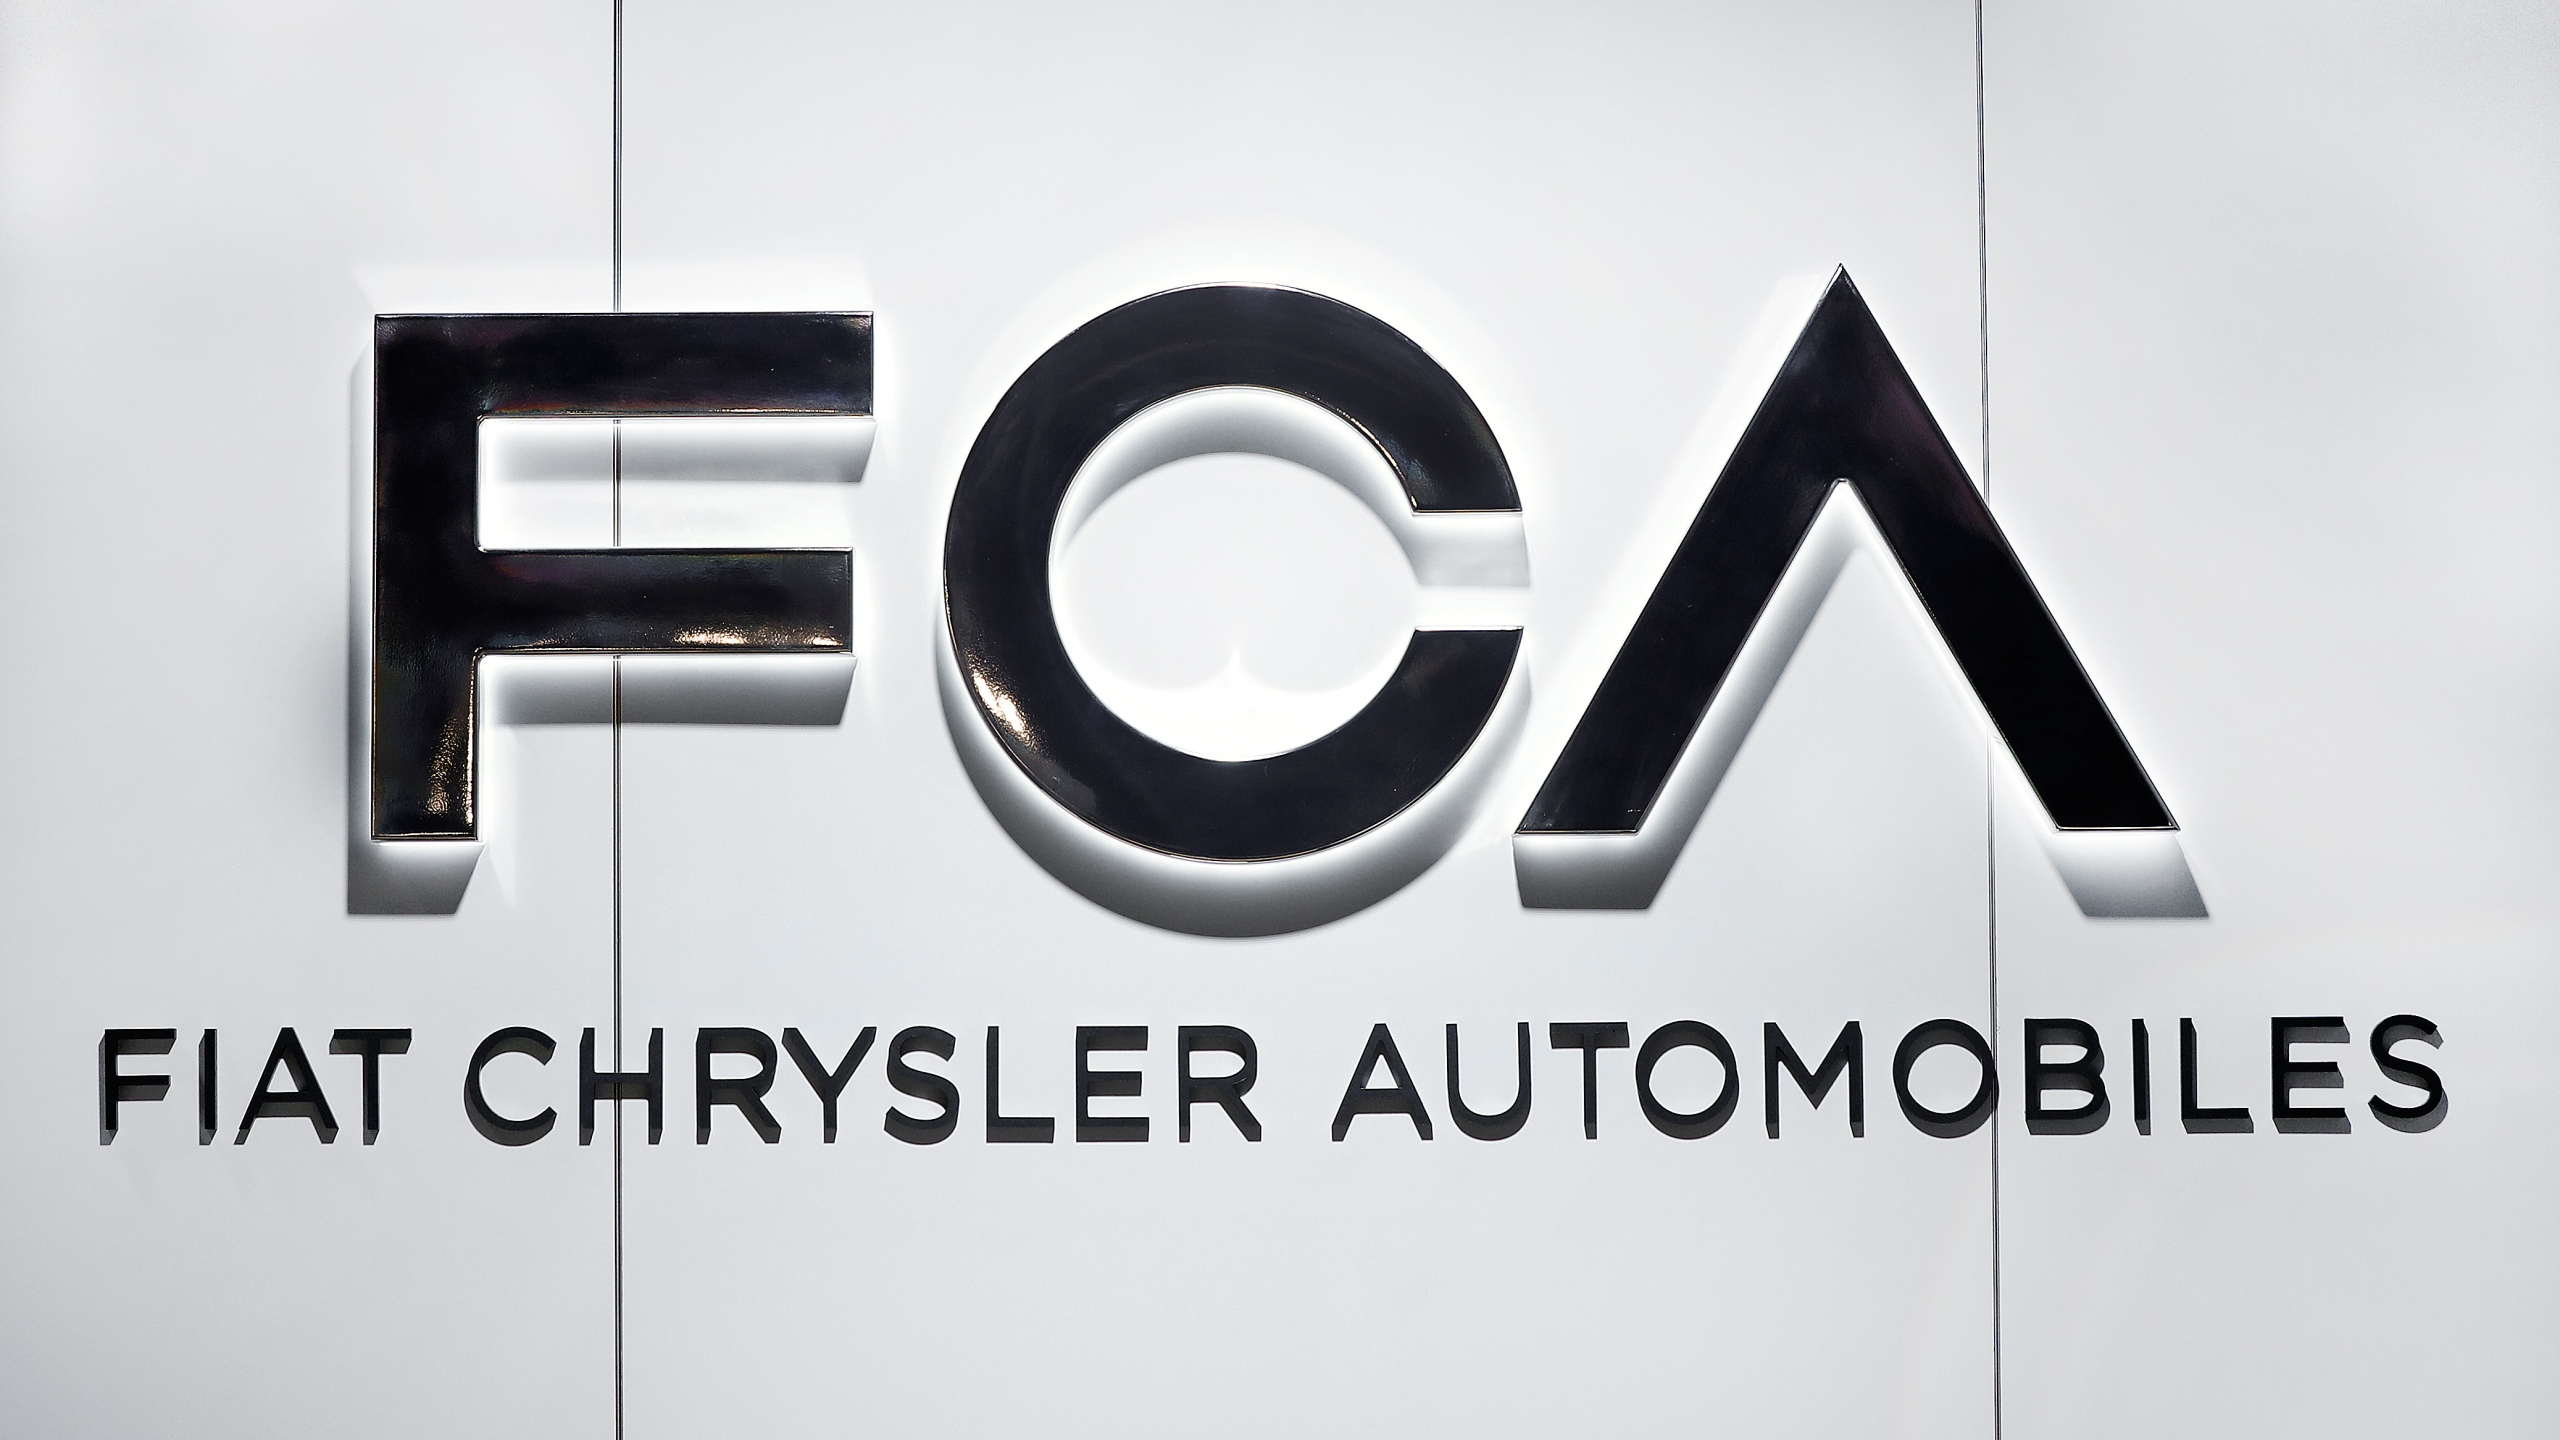 Fiat_Chrysler_Detroit_10816-159532.jpg08156389